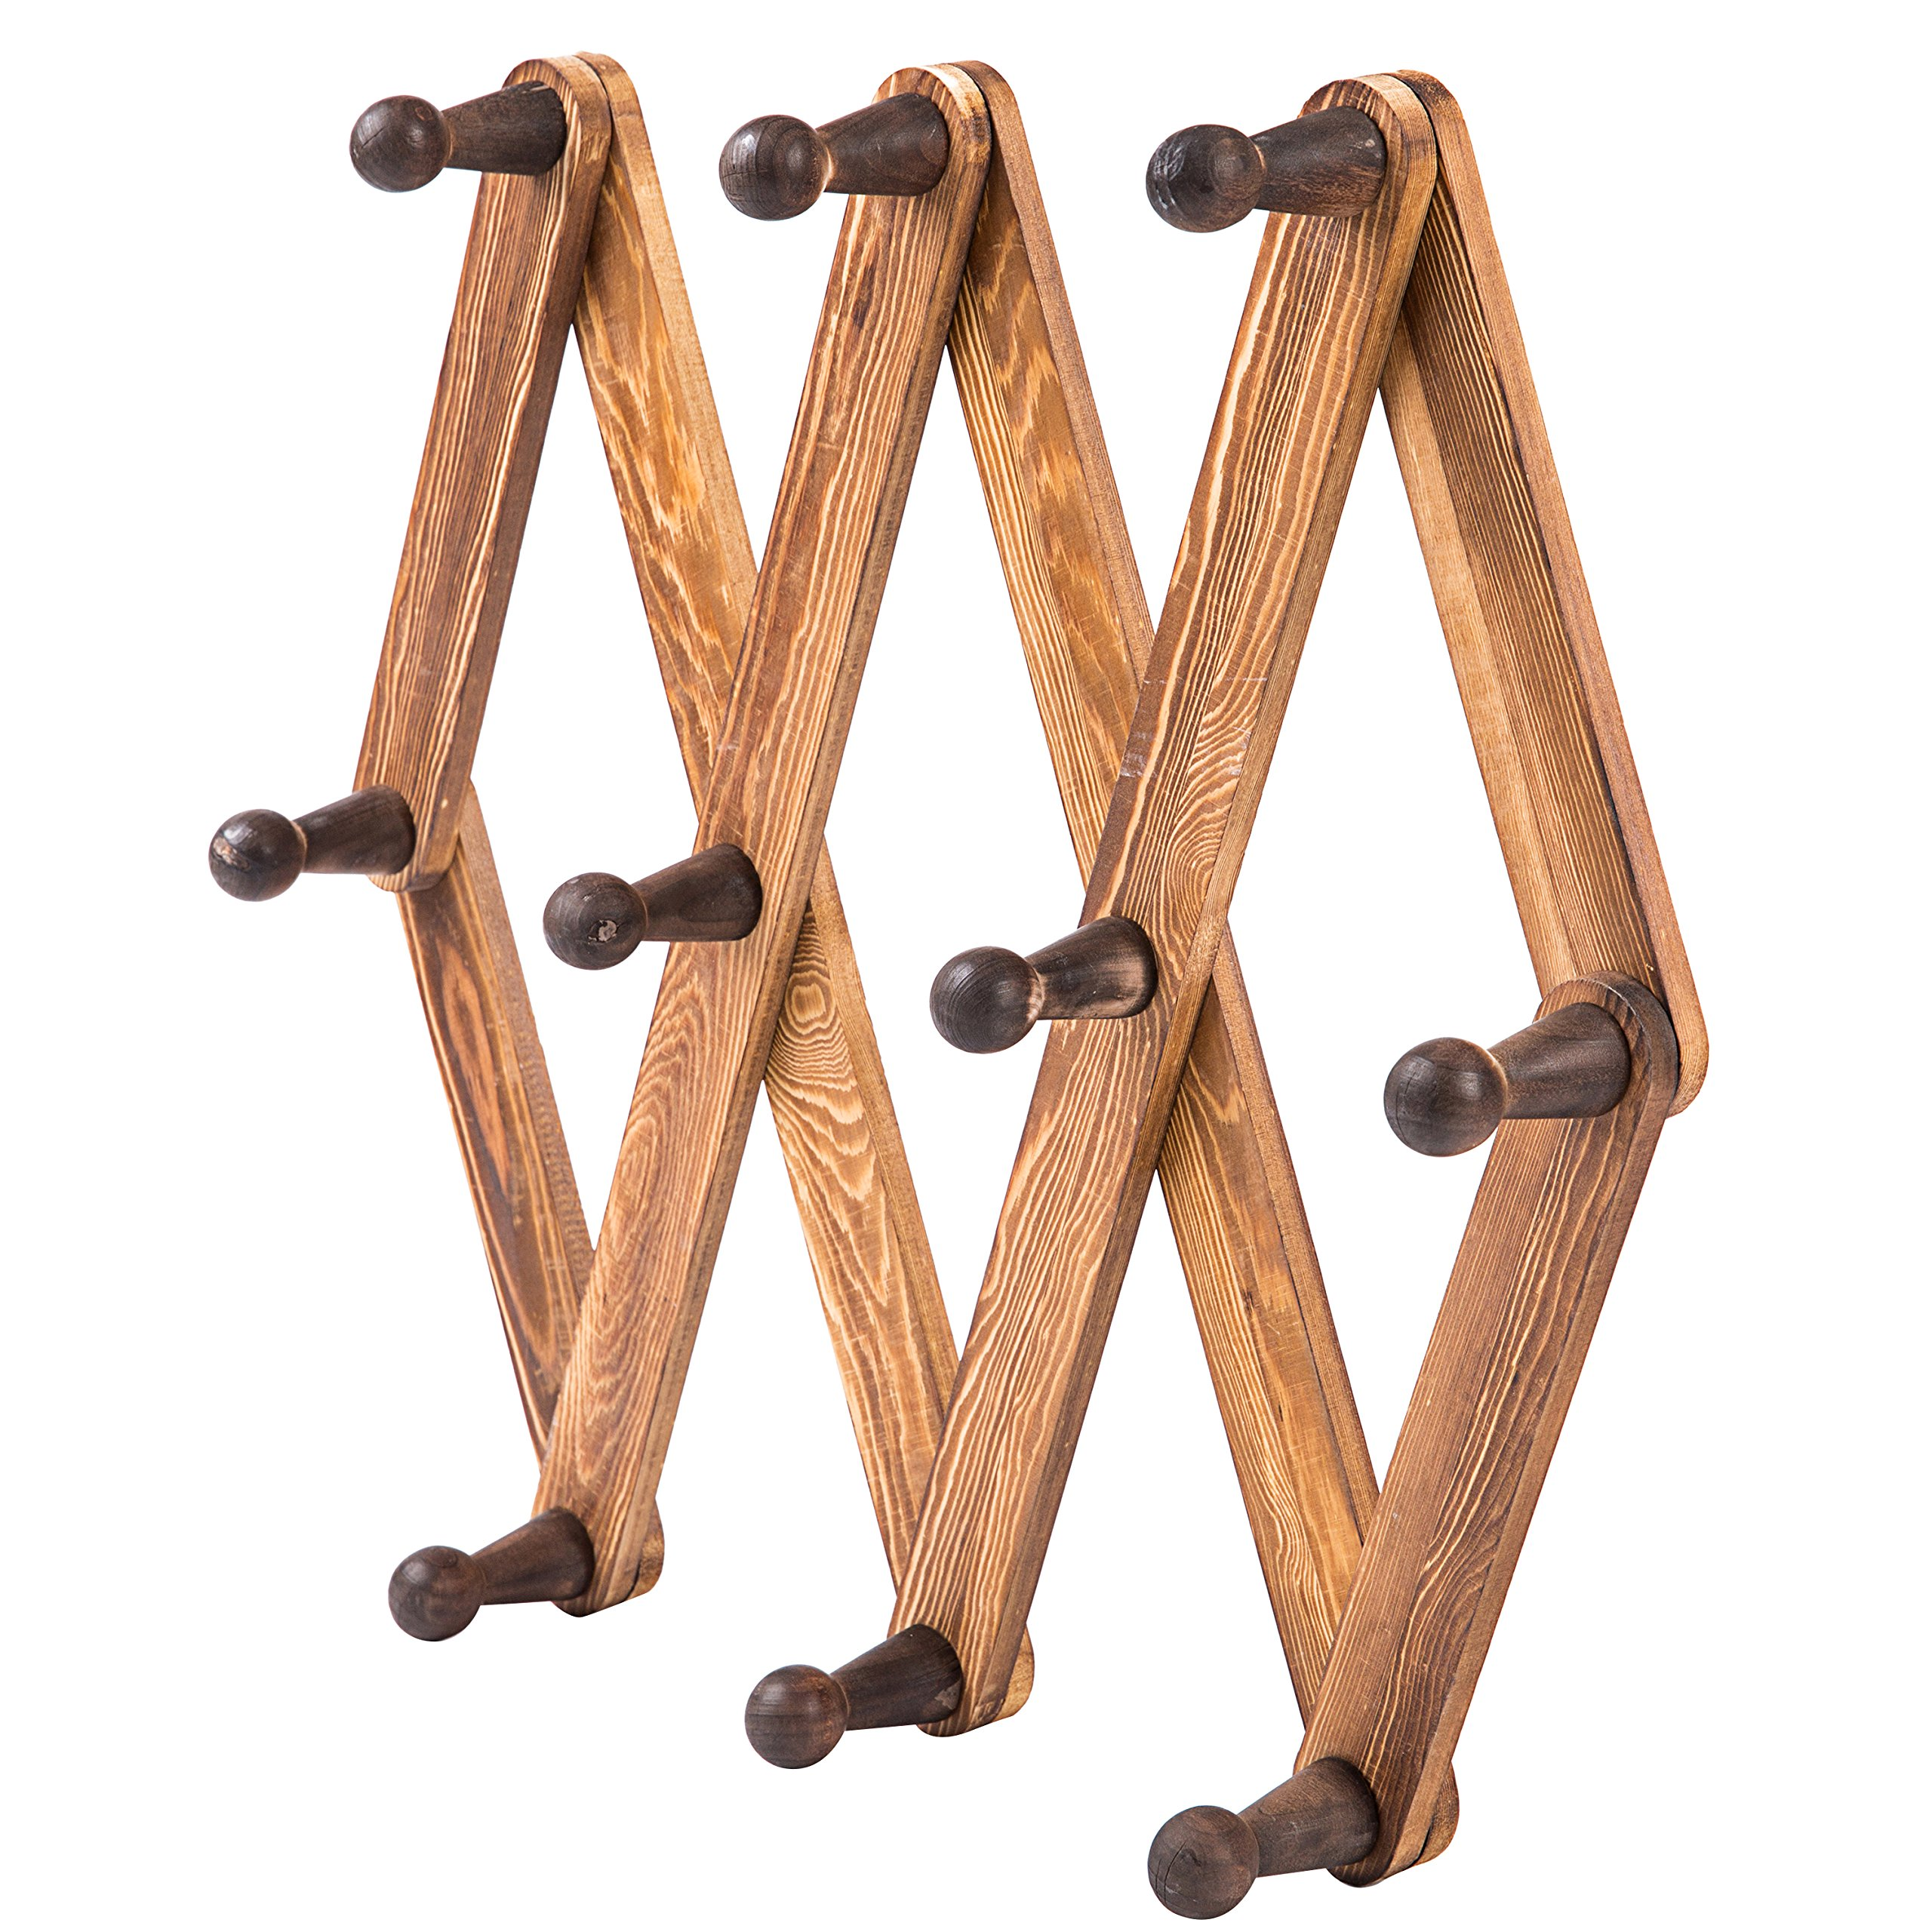 MyGift 10 Hook Torched Wood Wall Mounted Expandable Accordion Peg Coat Rack Hanger by MyGift (Image #5)